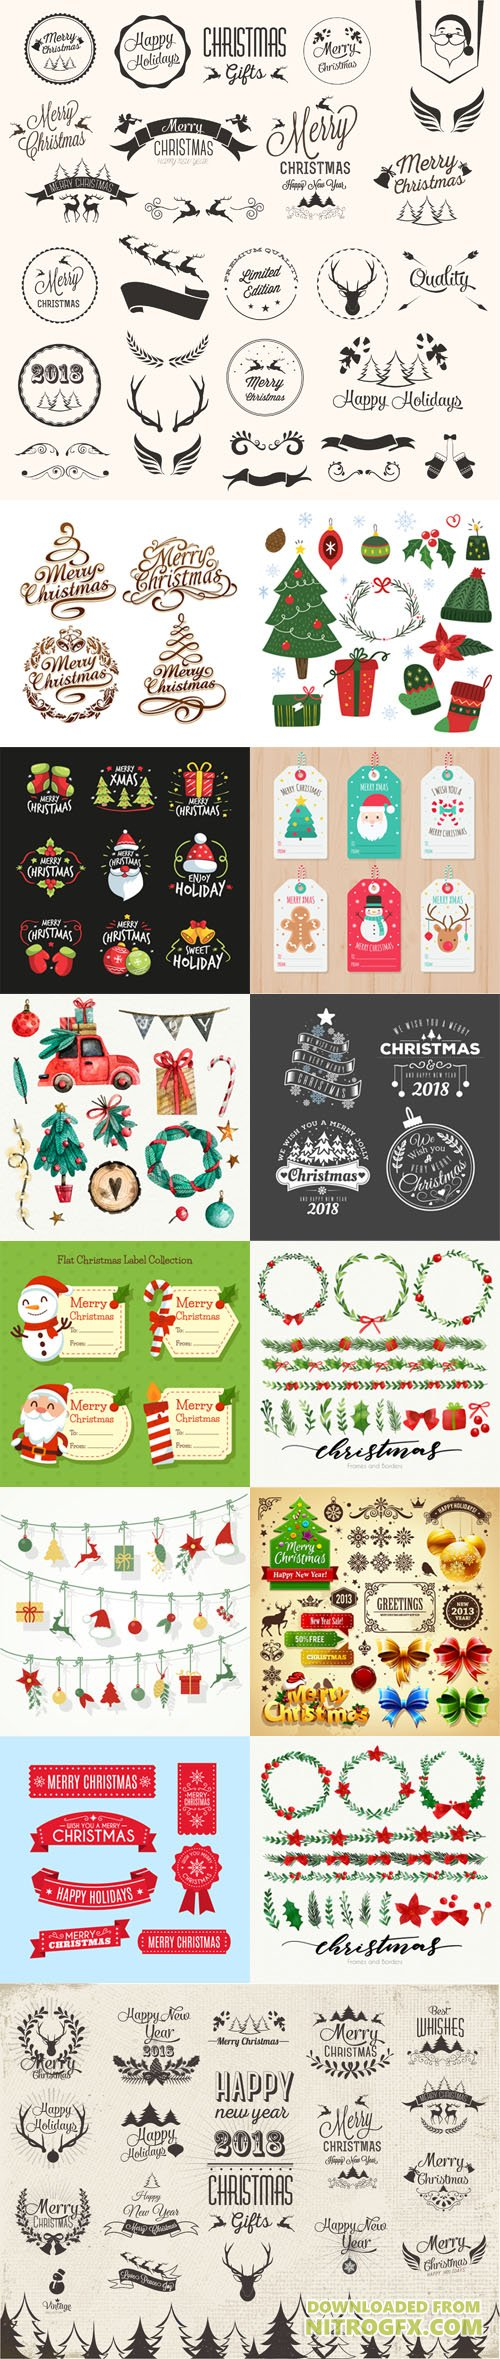 Pretty Christmas Elements Collection in Vector